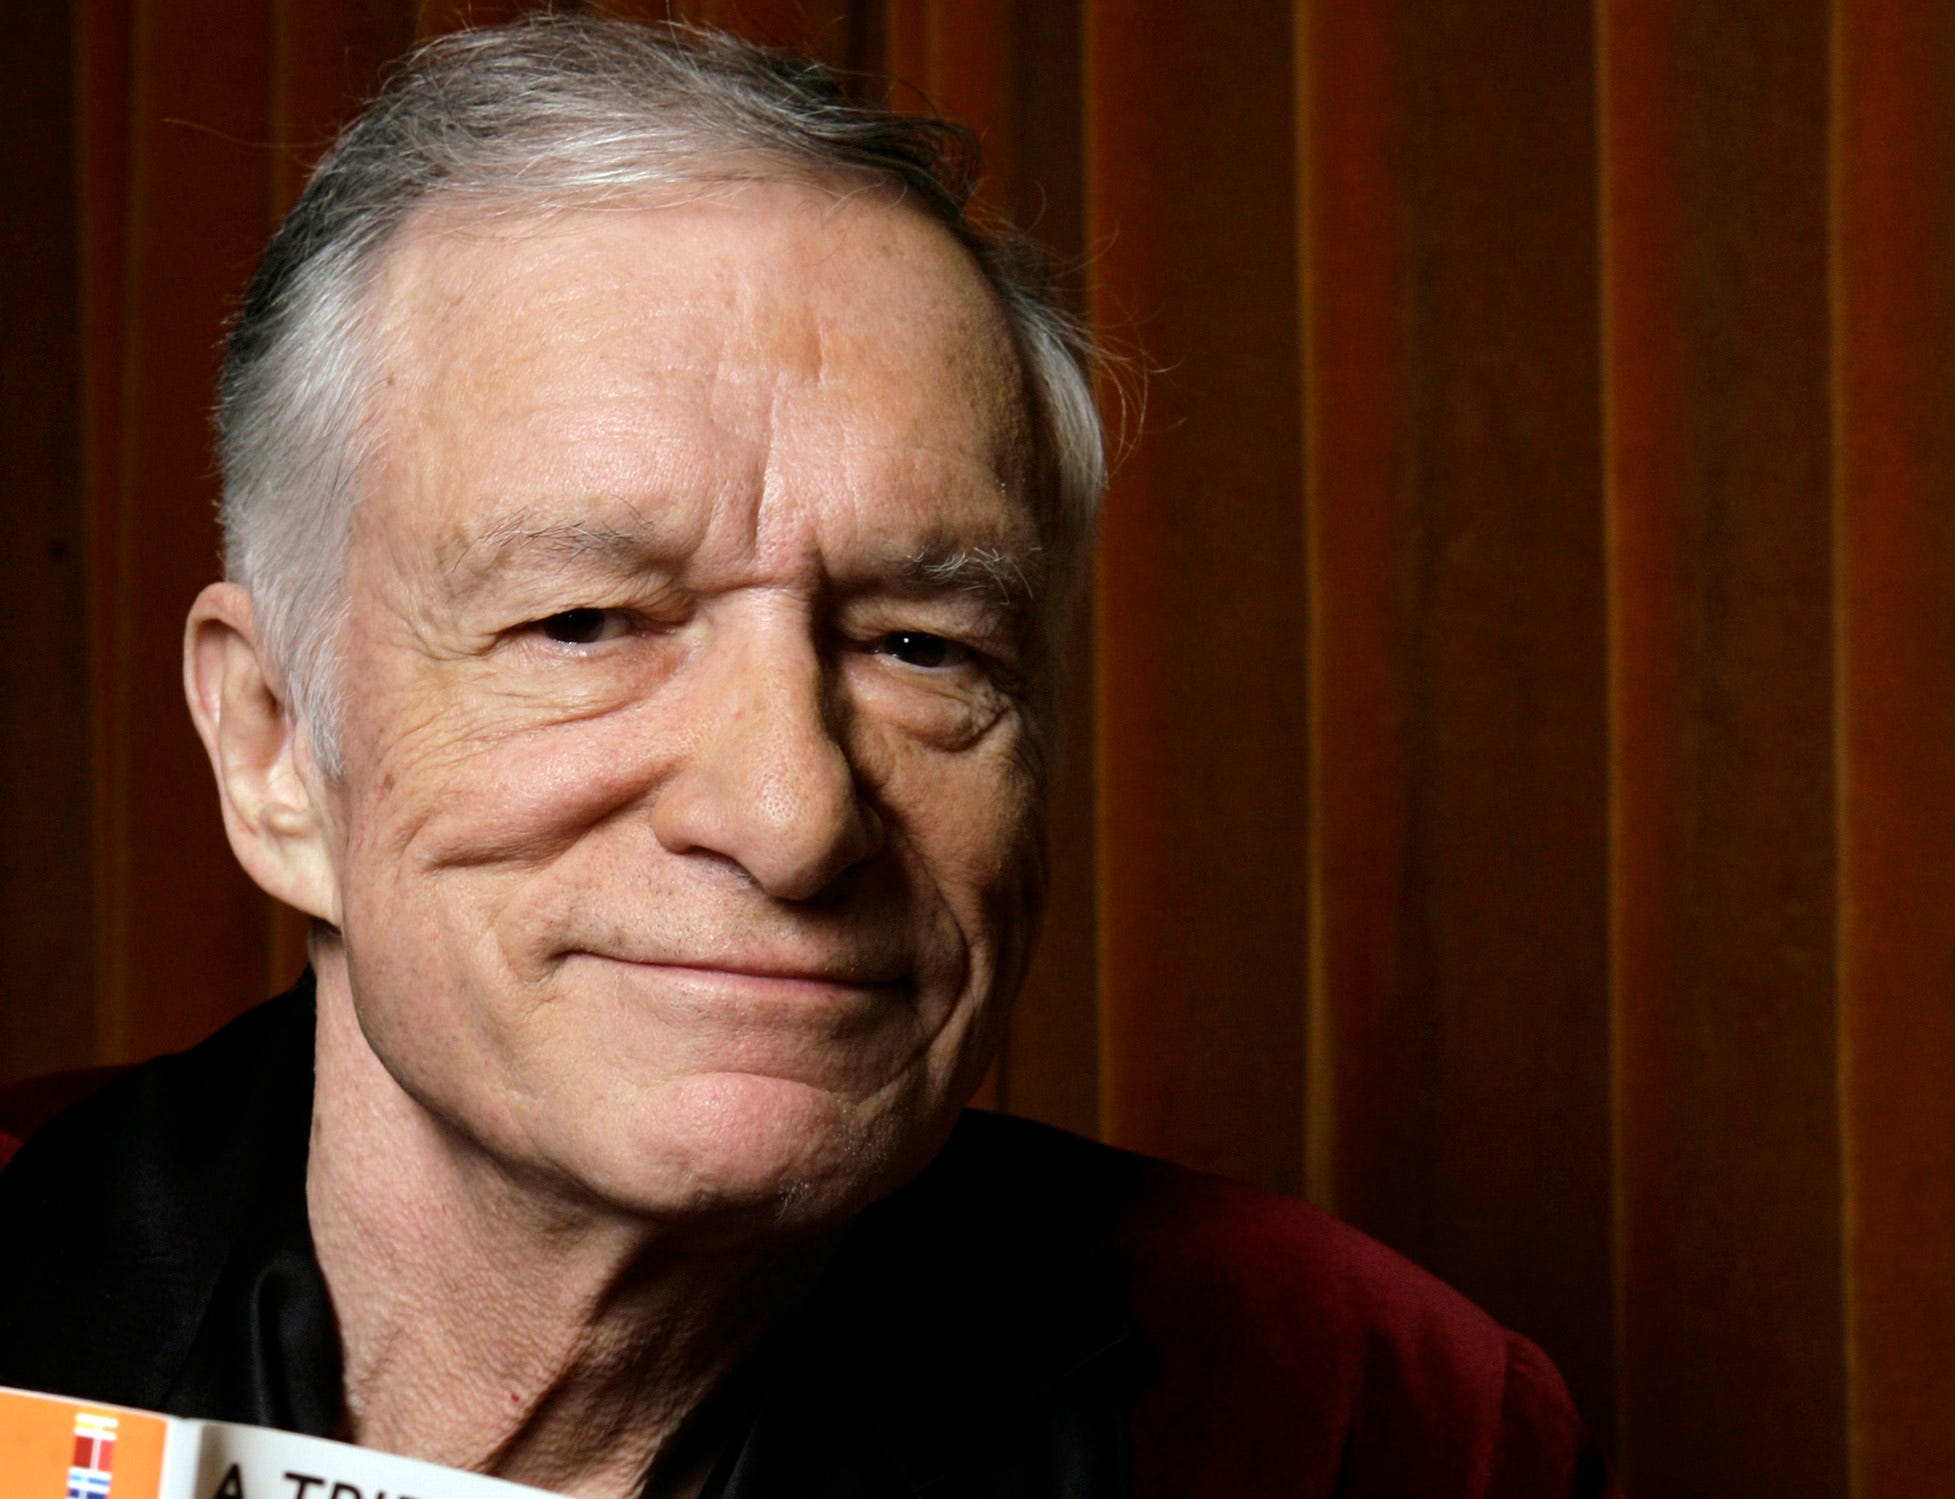 Playboy Editor-in-Chief and Chief Creative Officer Hugh Hefner poses for a photo at the Playboy Mansion in Los Angeles Thursday, April 5, 2007. (AP Photo/Damian Dovarganes) ORG XMIT: LA113